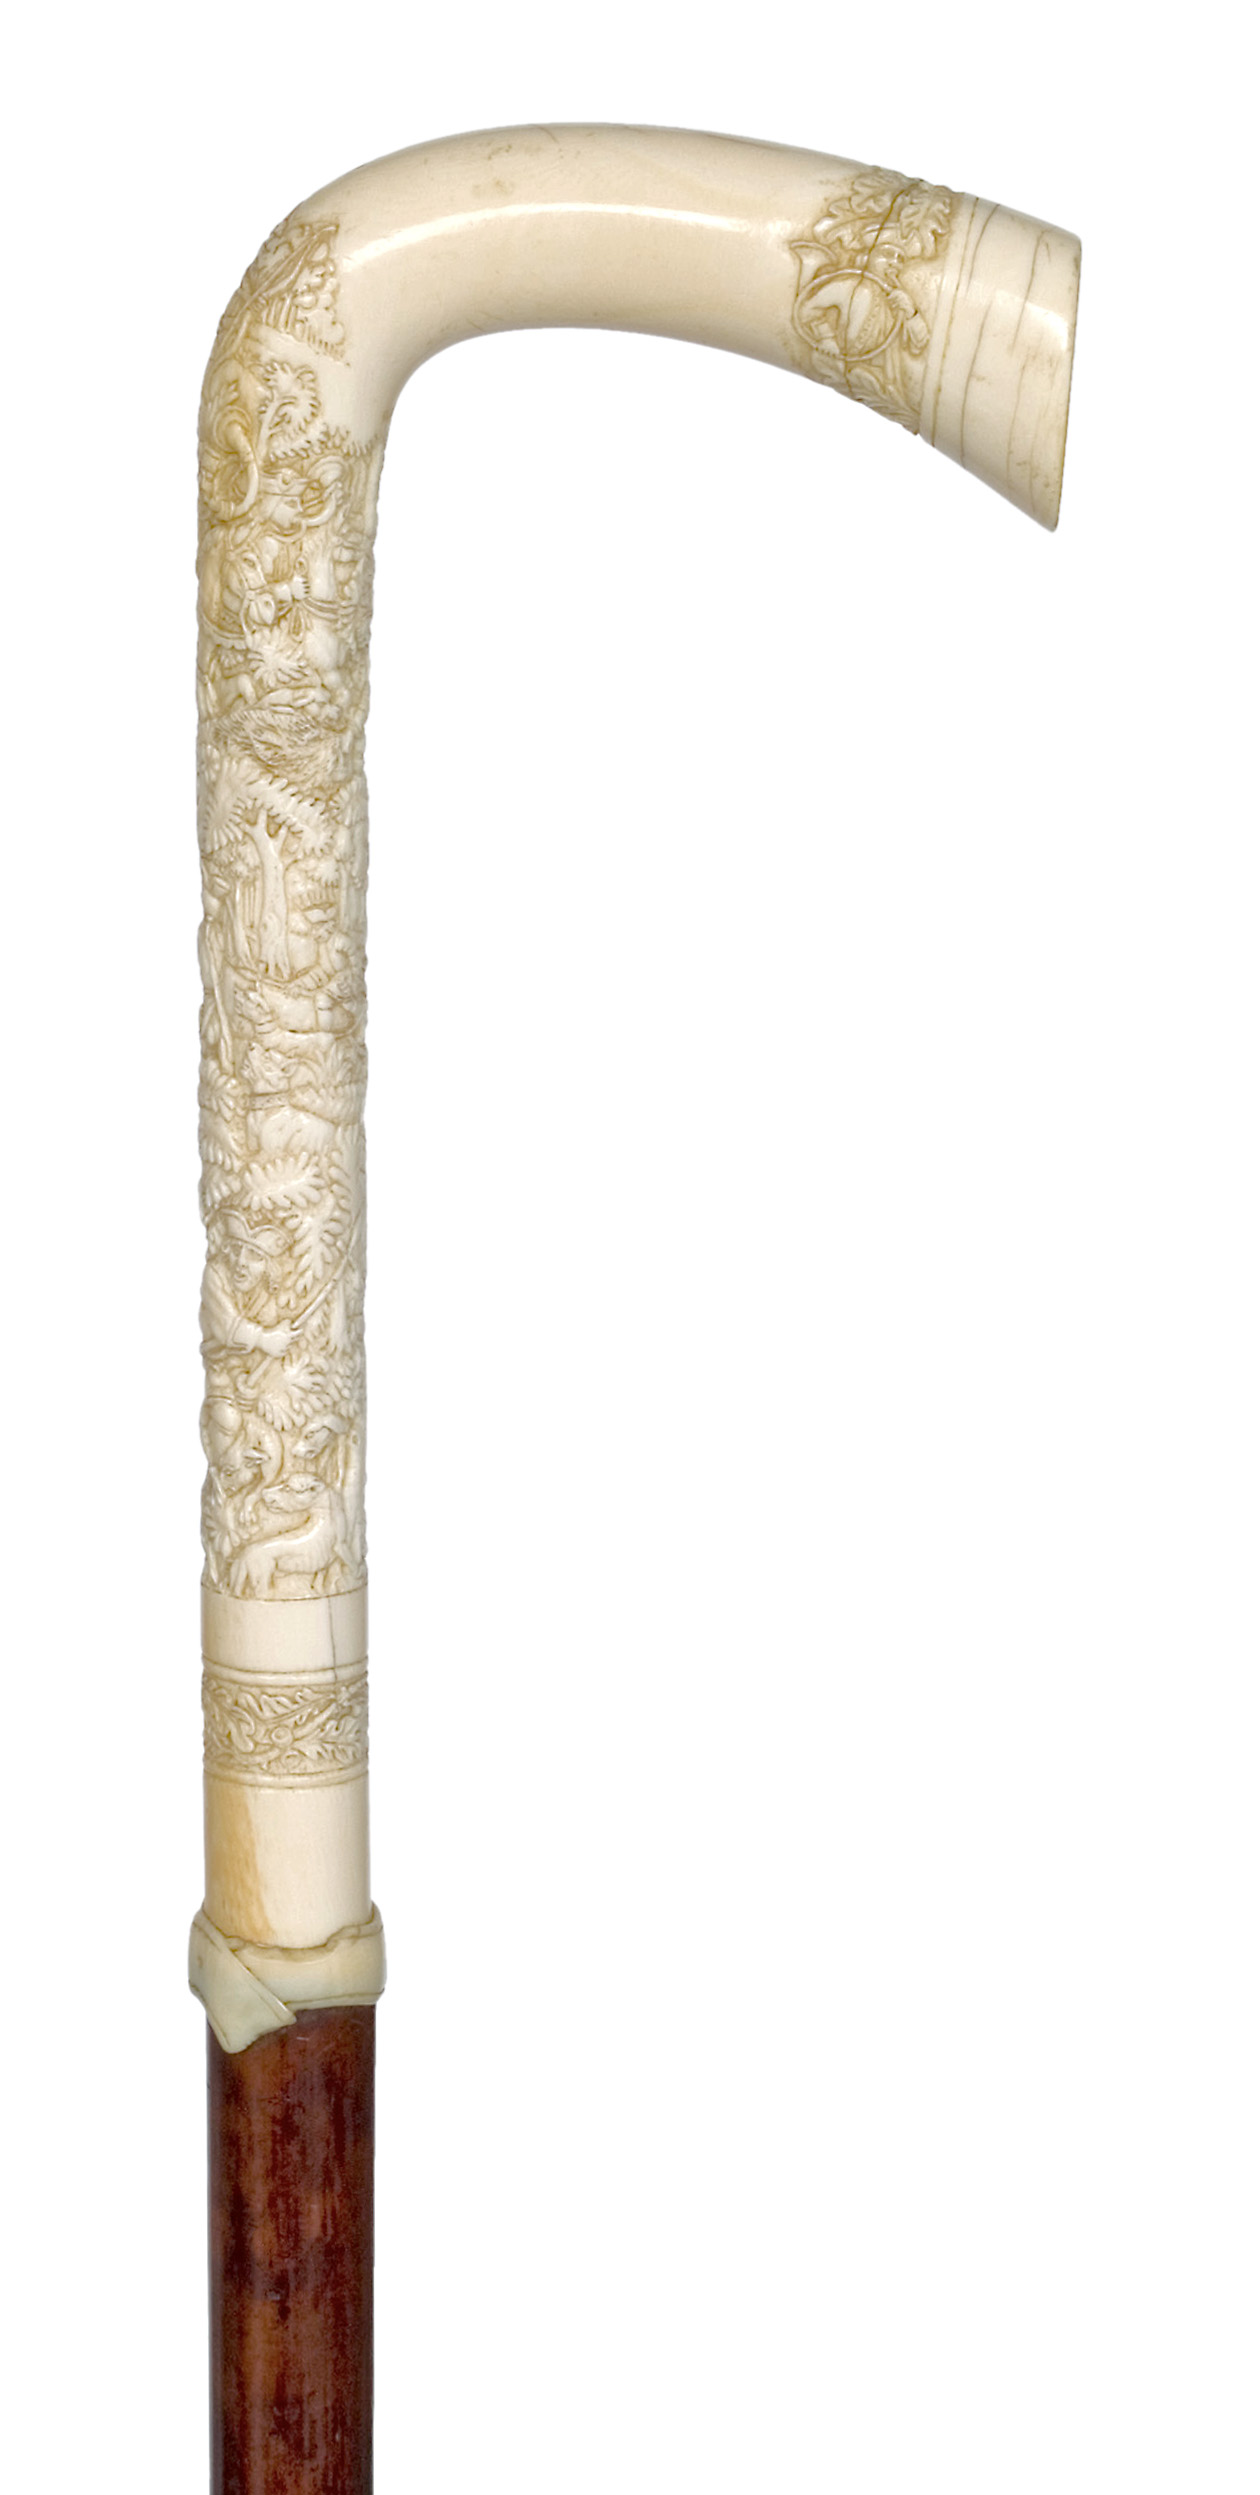 L-shaped ivory handle with carved boar hunting scene | Canequest